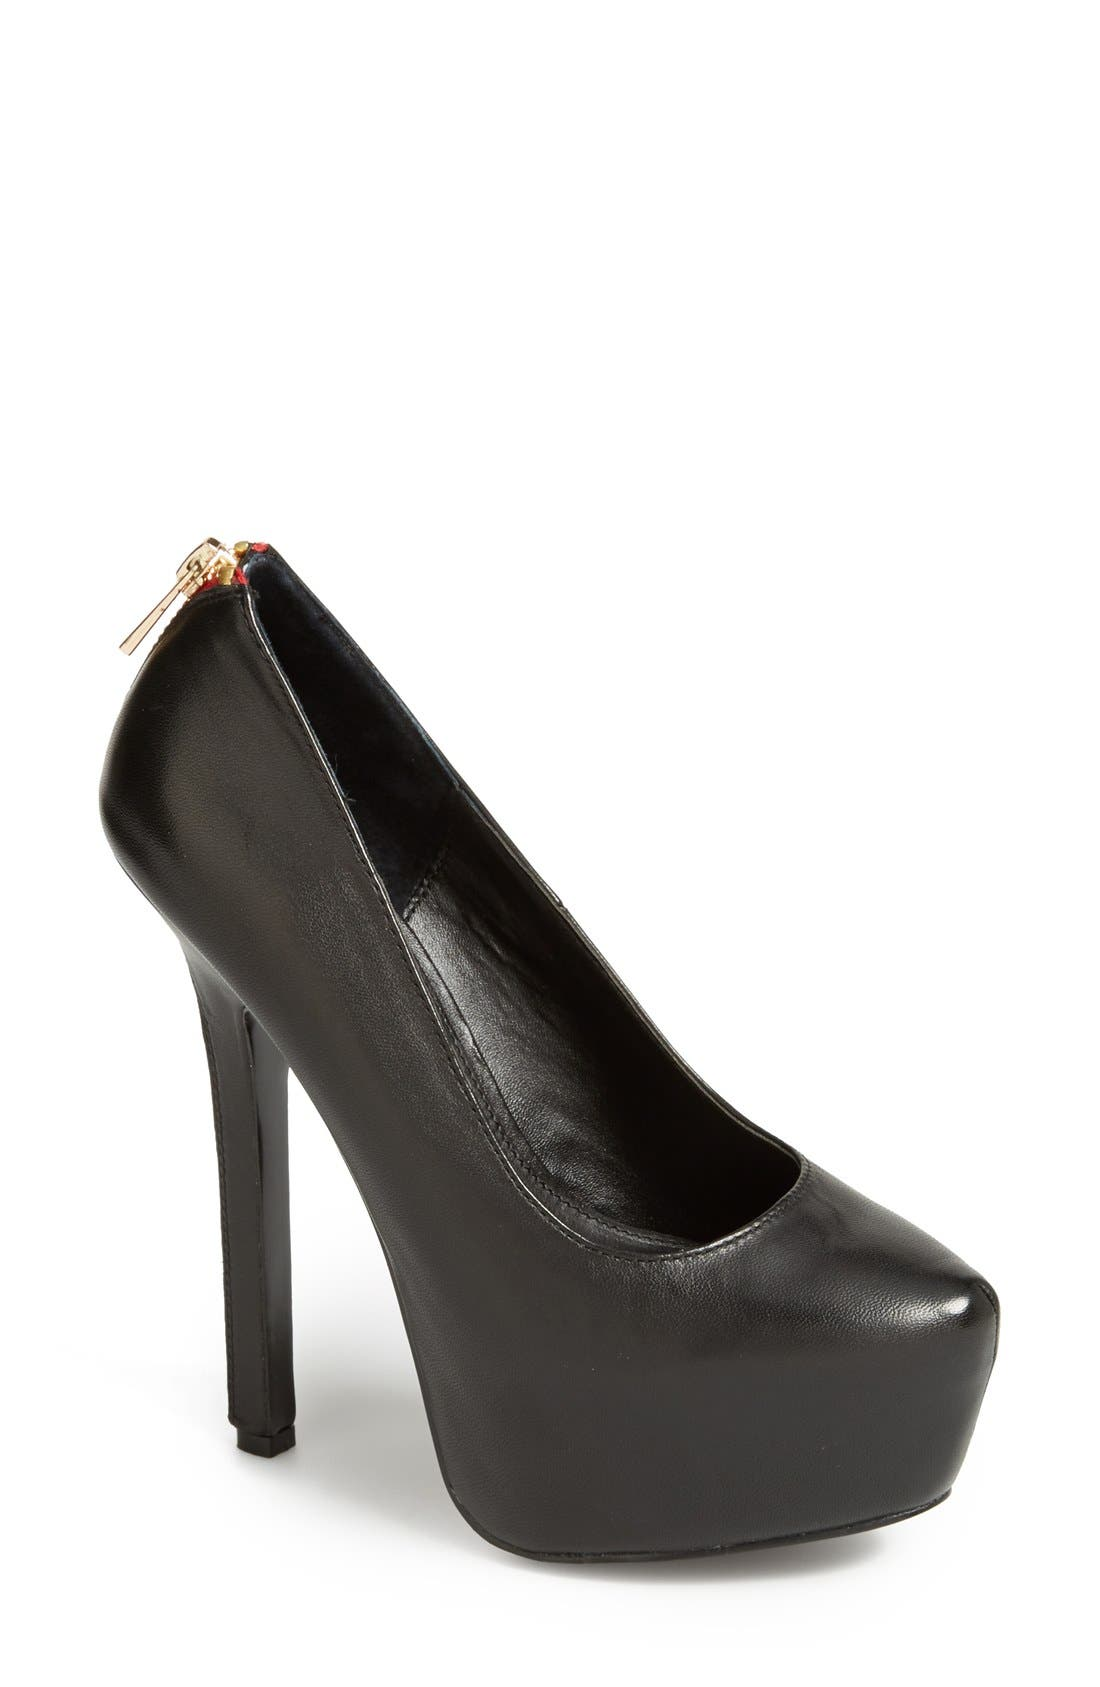 Alternate Image 1 Selected - Steve Madden 'Daara' Pump